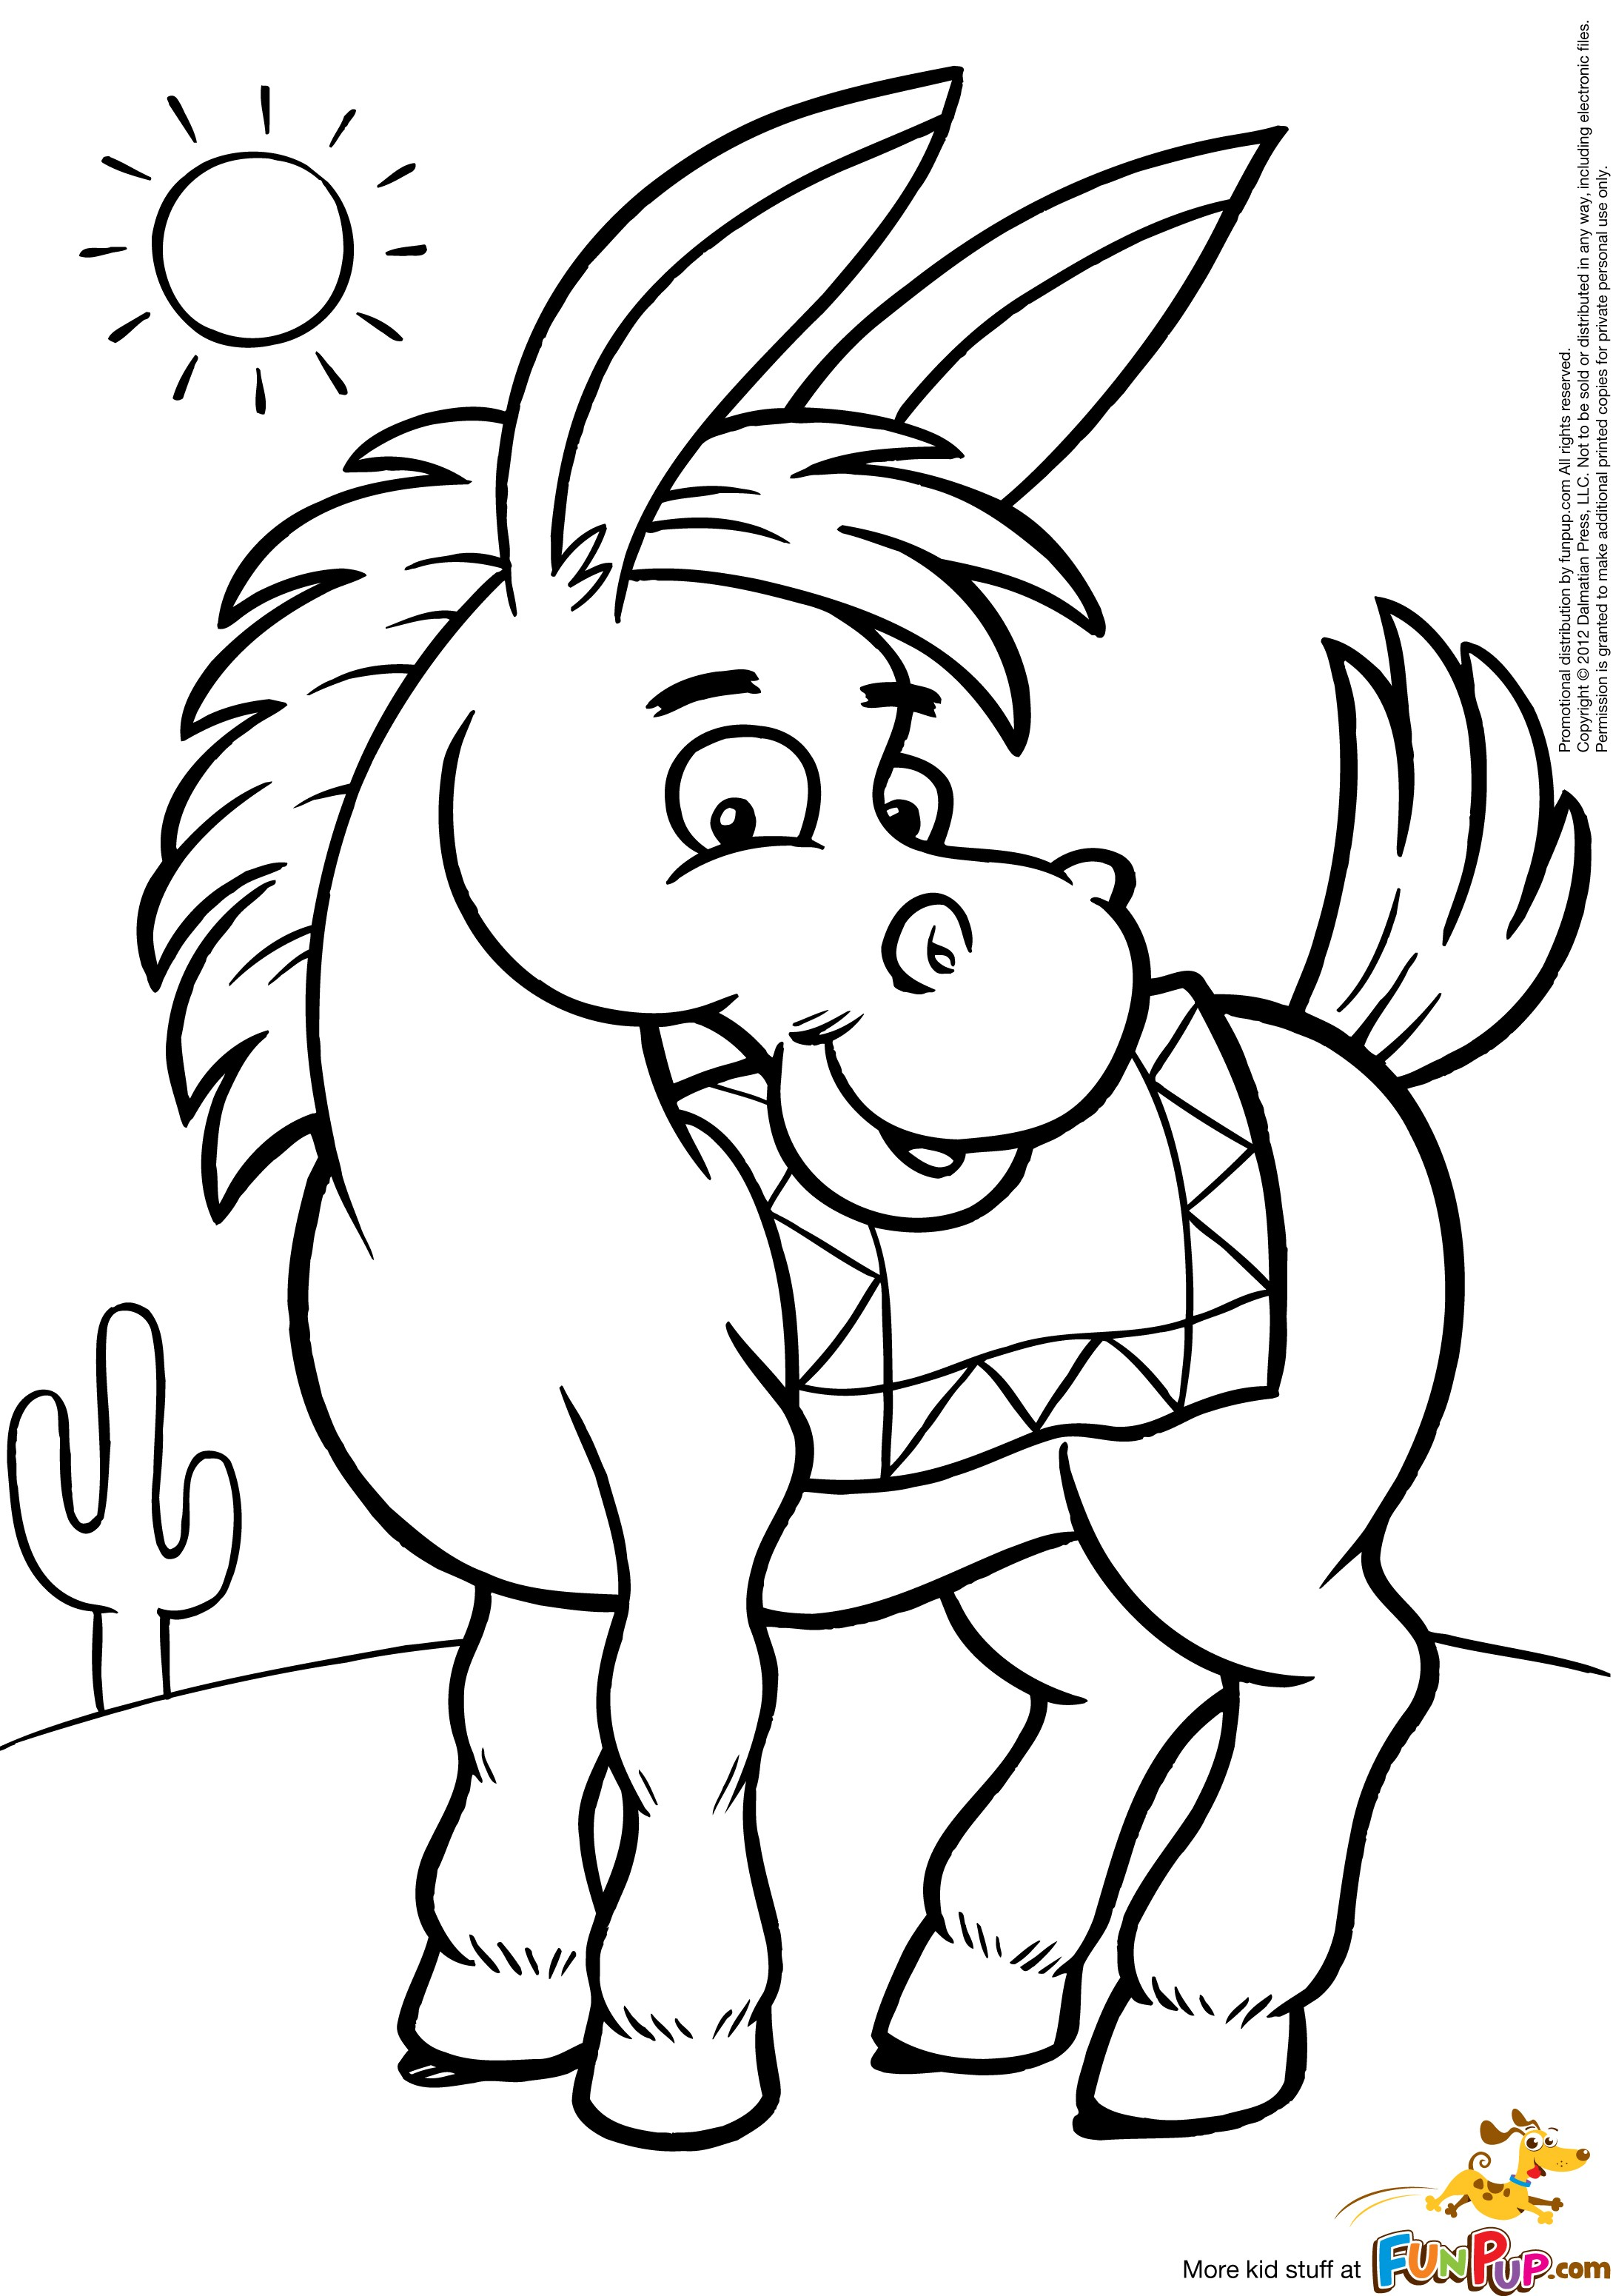 coloring picture to print donkey coloring pages to download and print for free to picture coloring print